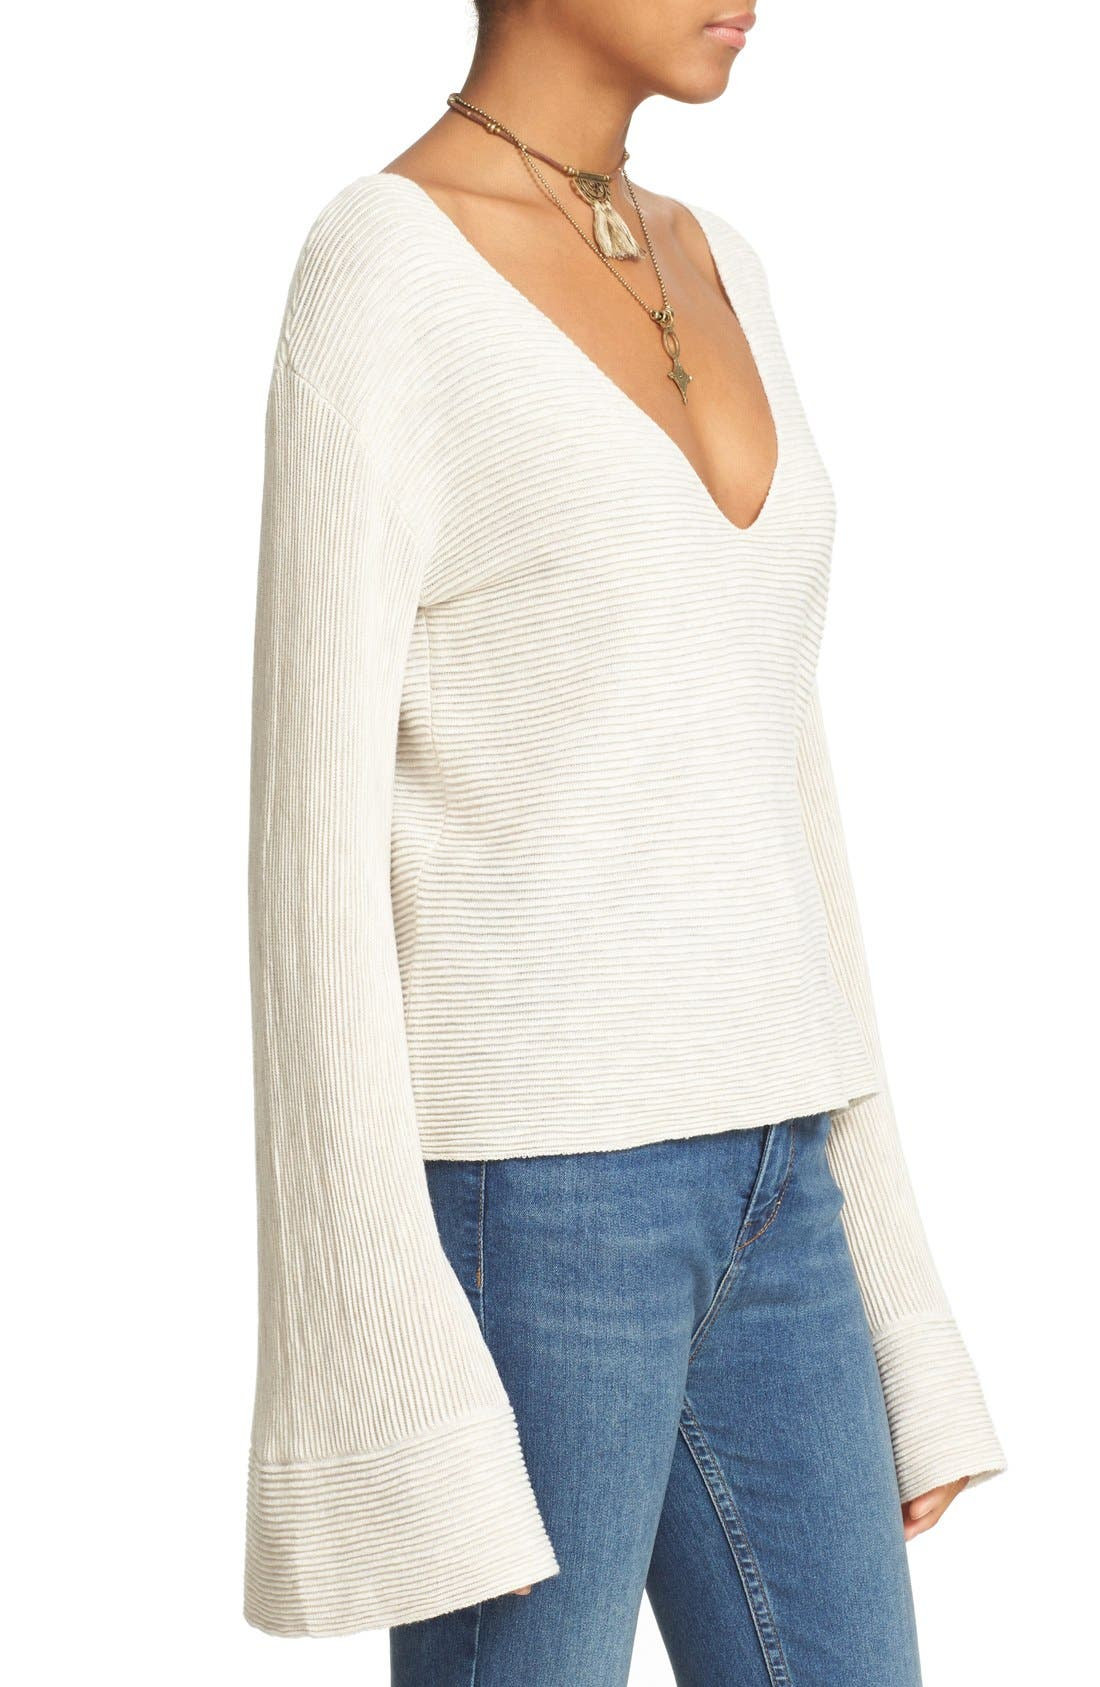 'Starman' Rib Knit Pullover,                             Alternate thumbnail 4, color,                             Ivory